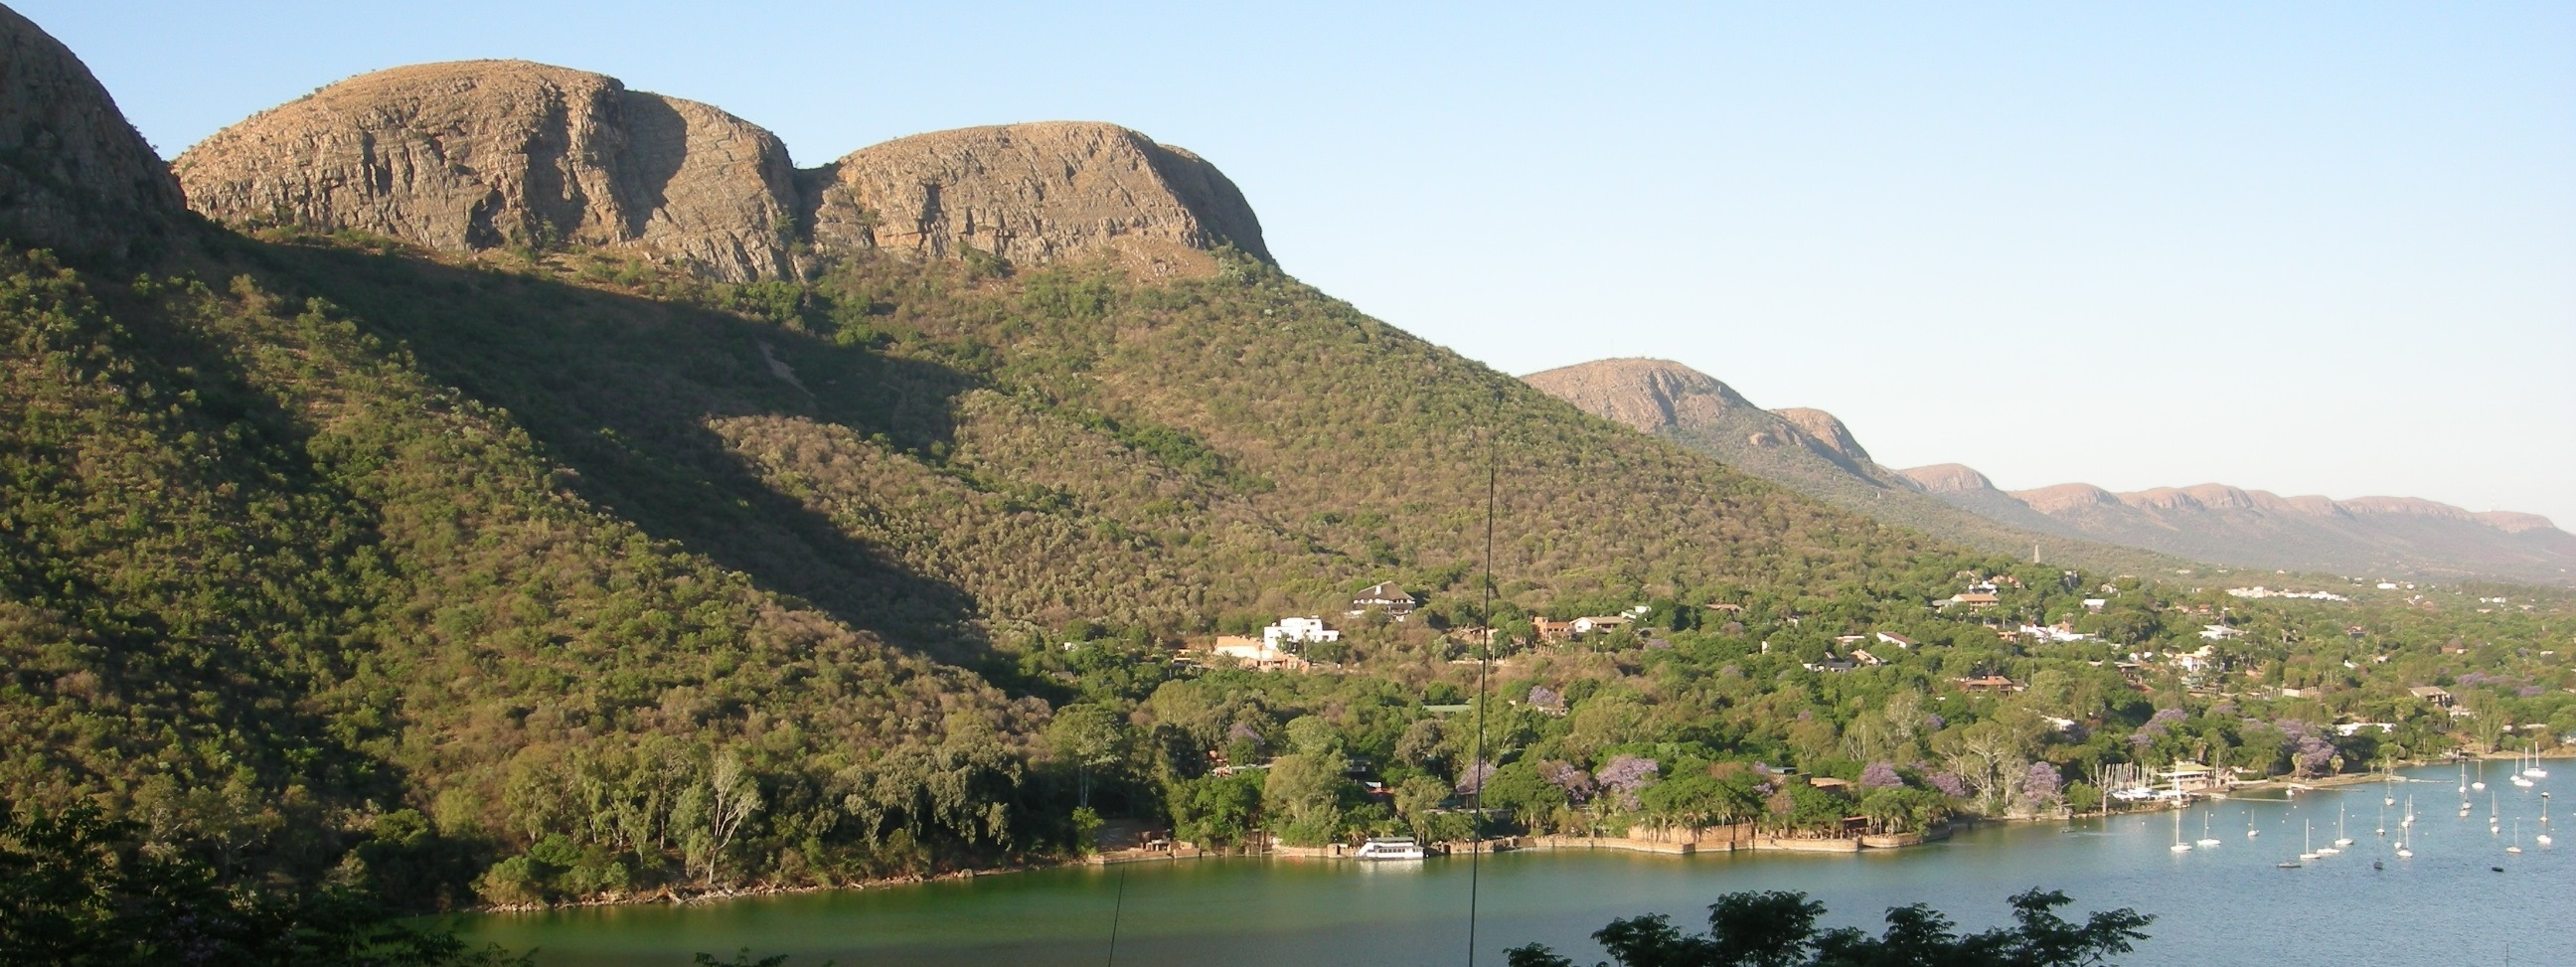 Real estate in Hartbeespoort Dam - Typical view of the Dam and Magaliesberg from Kosmos Village (1).JPG